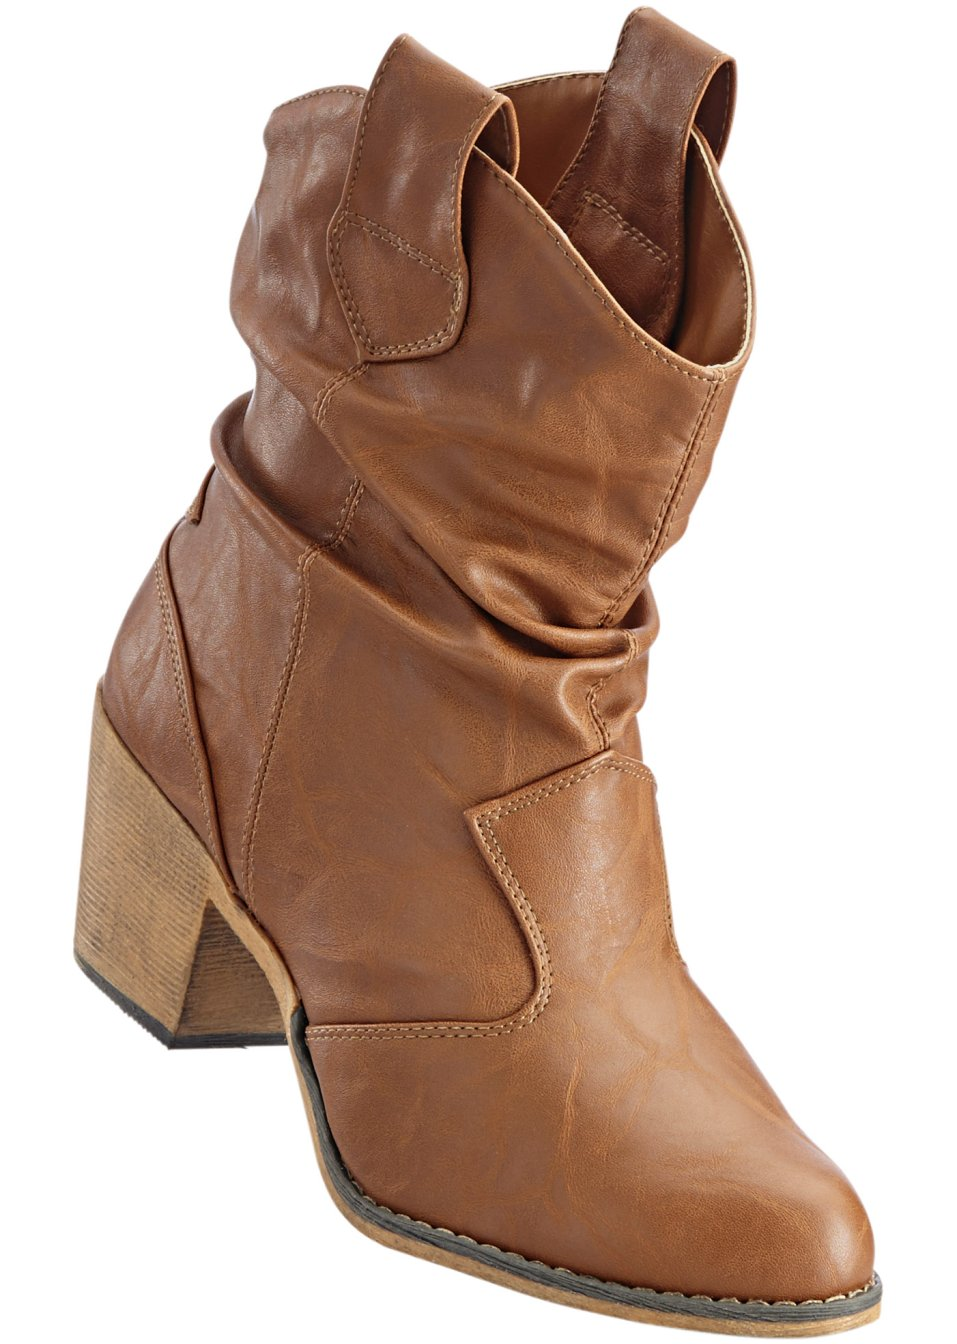 boots femme pas cher taille 42